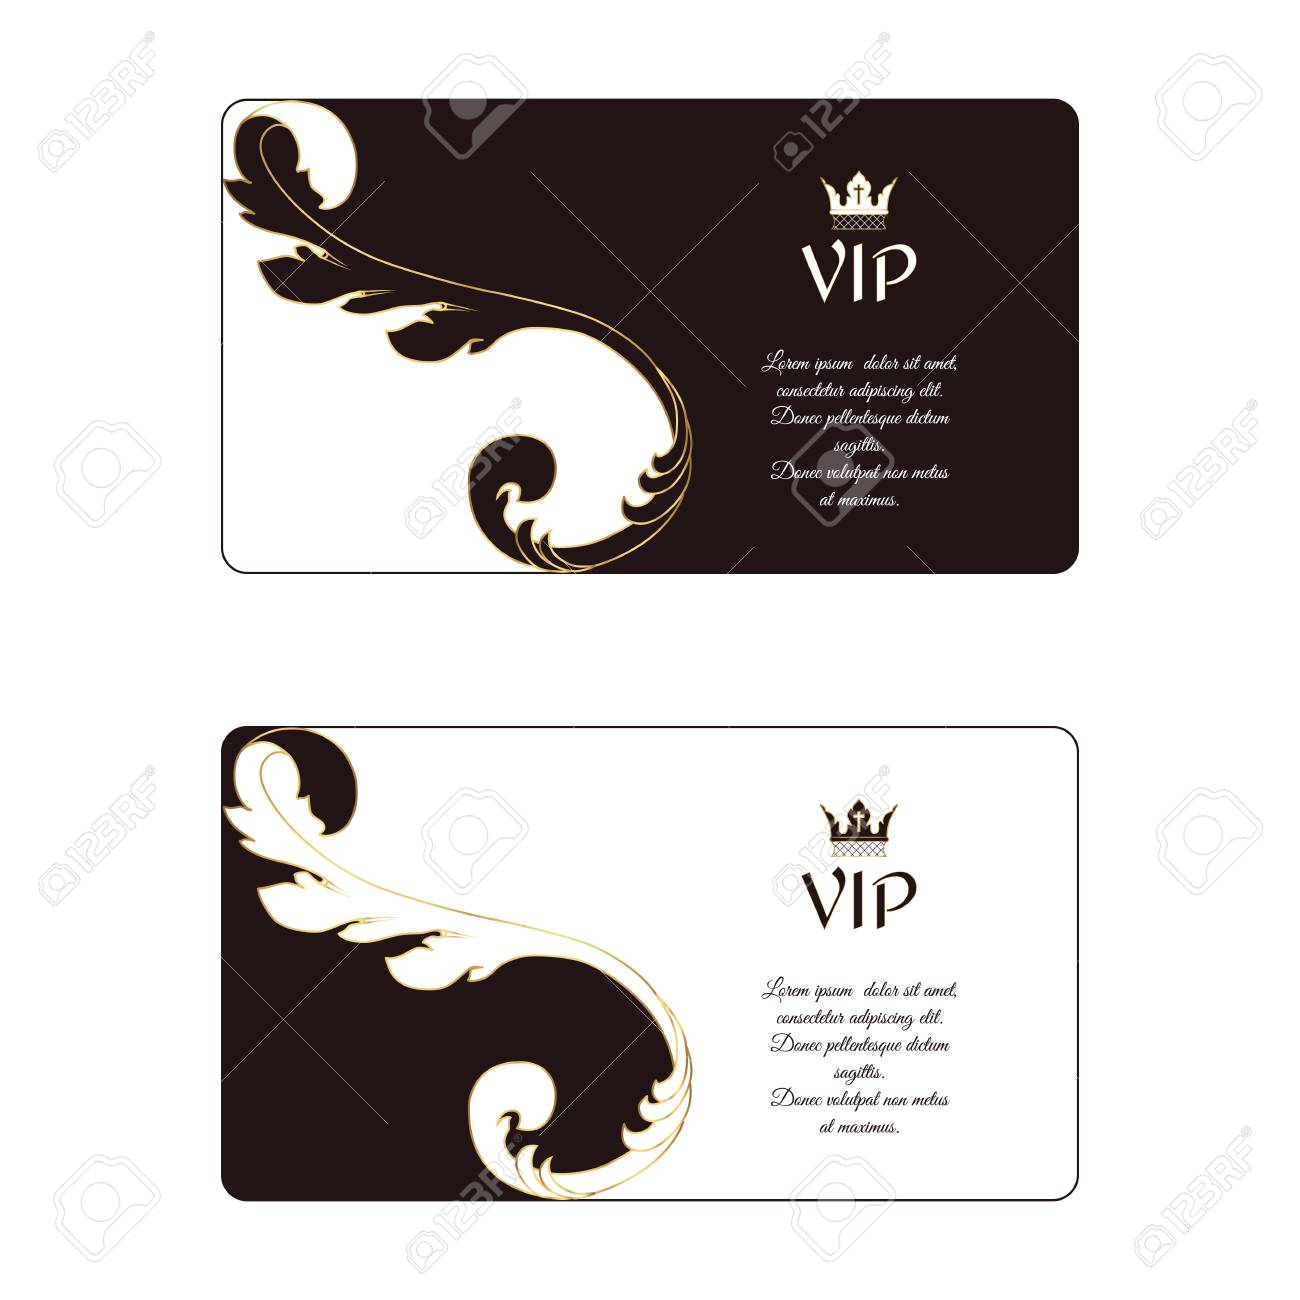 Set Of Two Elegant Horizontal Business Cards In Victorian Style